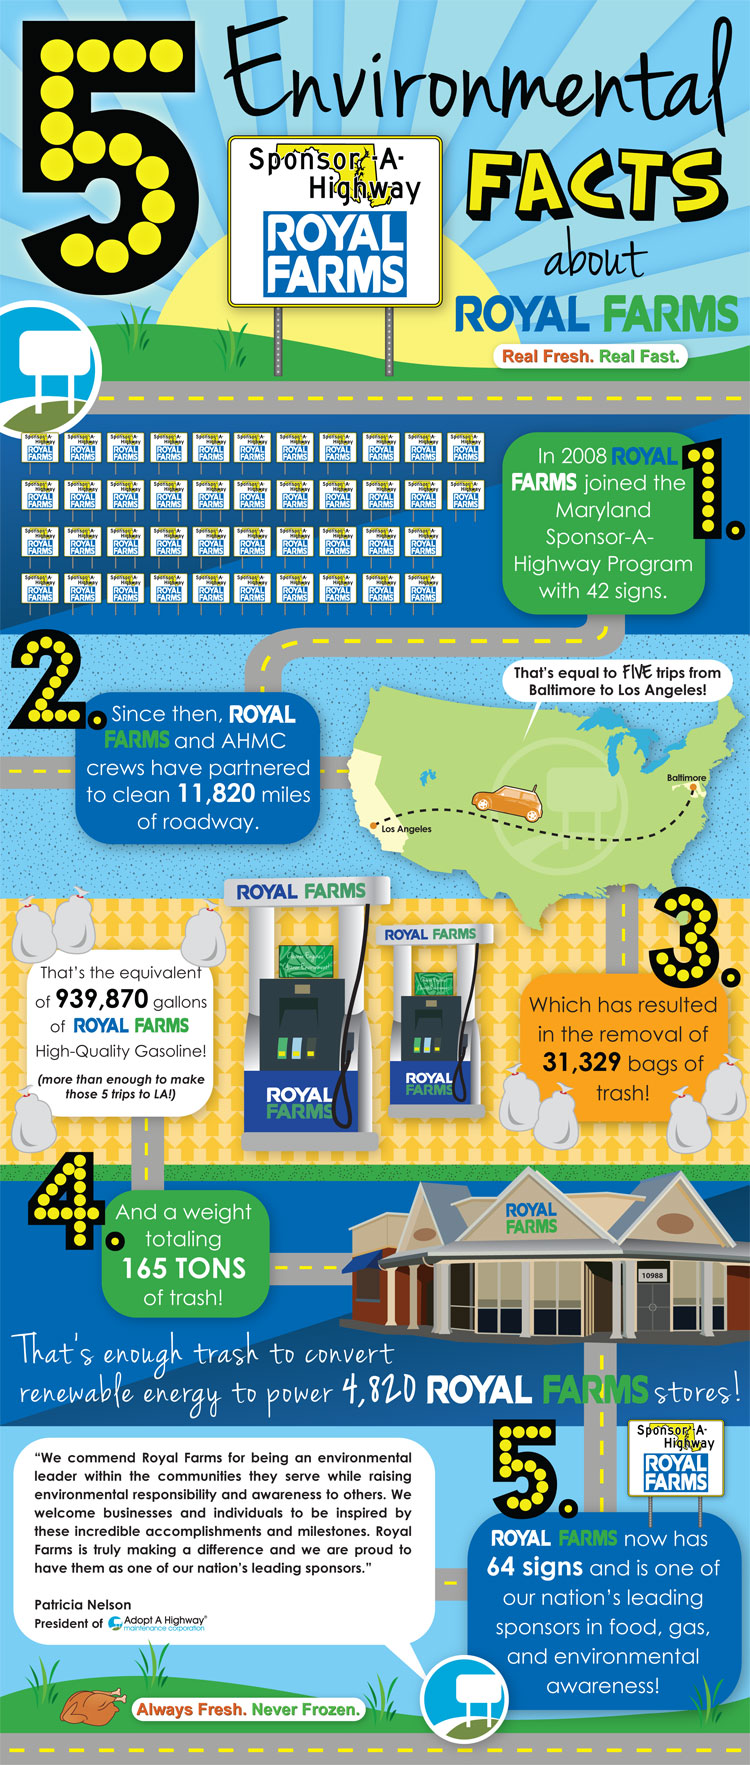 Info Graphic with 5 Environmental Facts about Royal Farms.